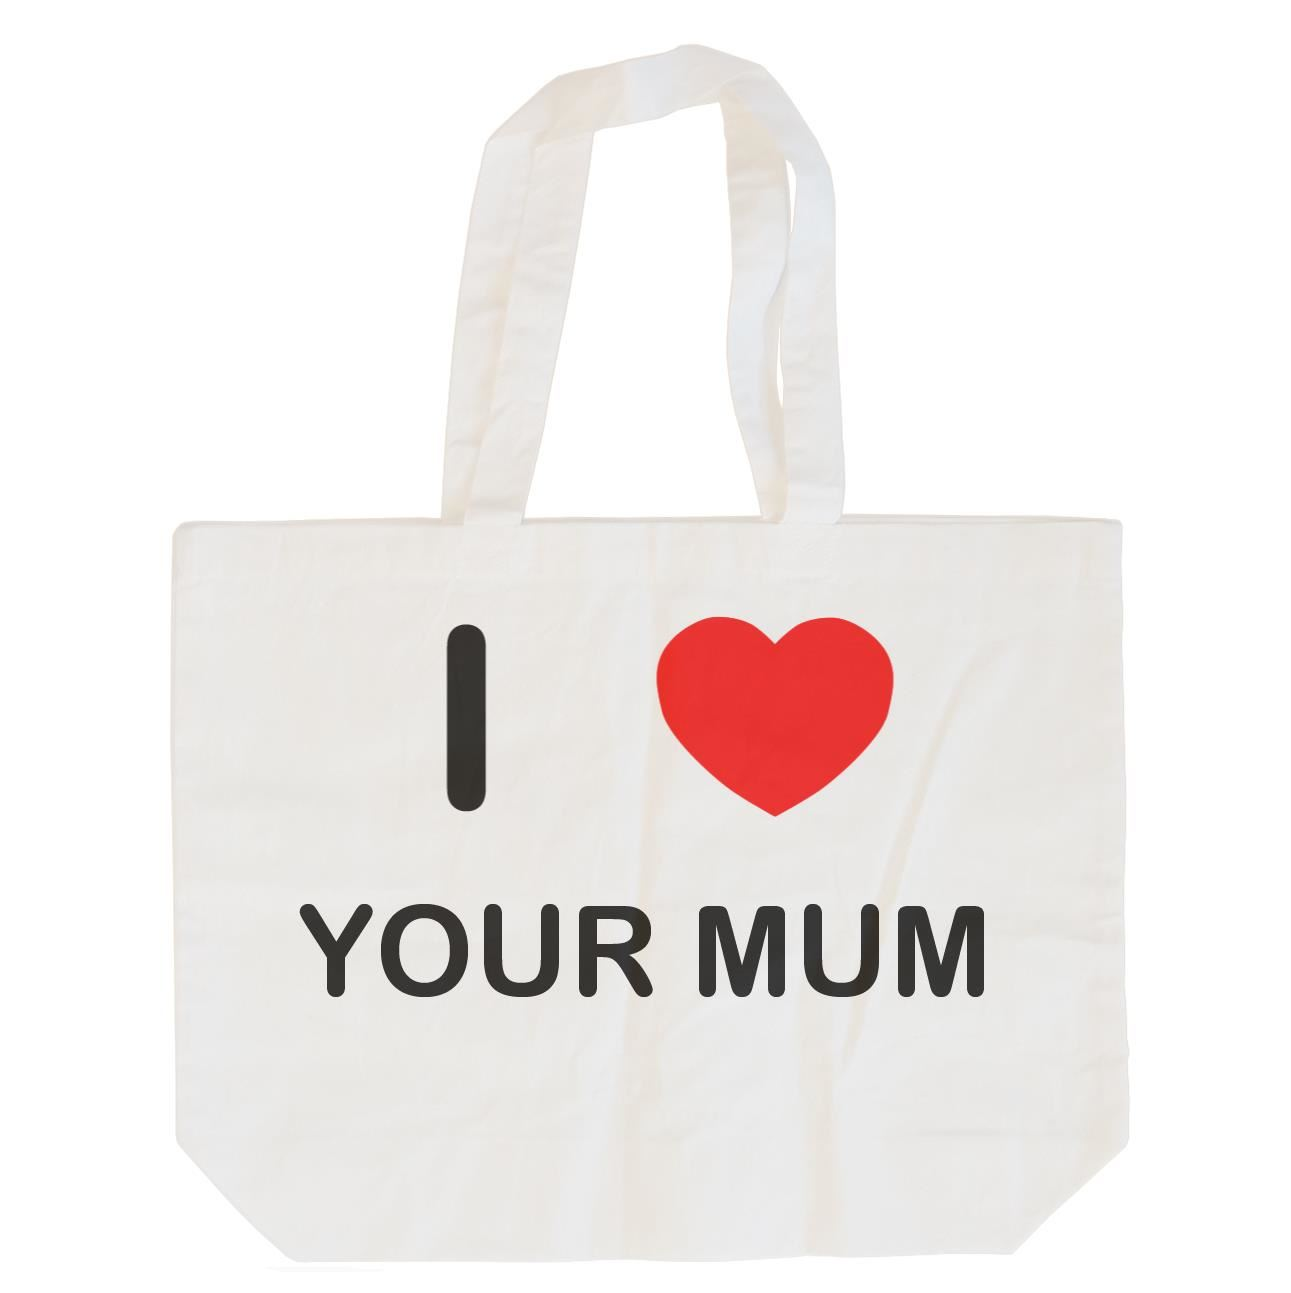 I Love Your Mum - Cotton Bag | Size choice Tote, Shopper or Sling